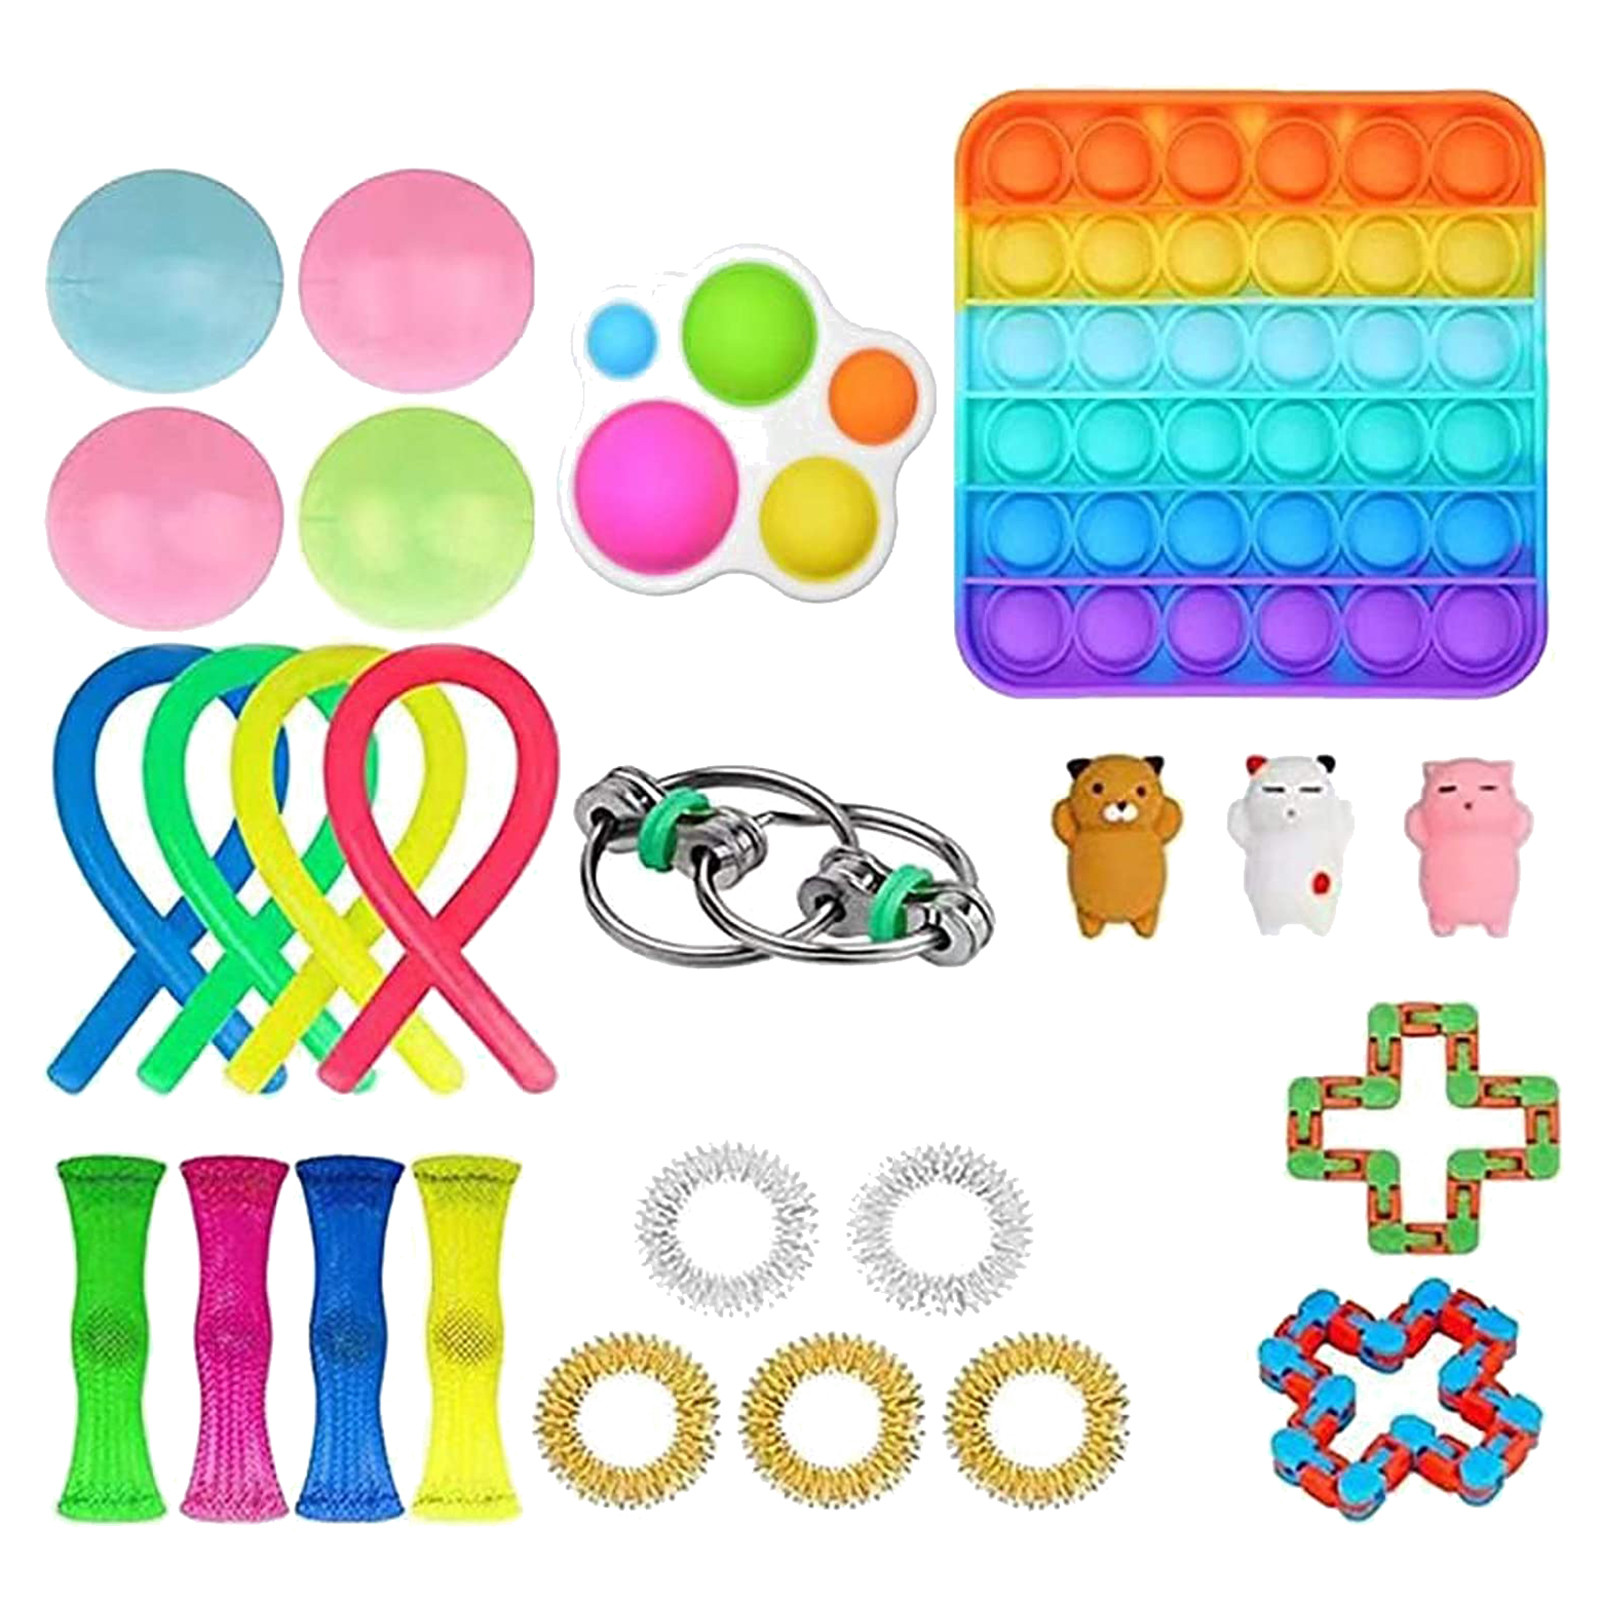 Fidget Toys Anti Stress Set Stretchy Strings Pop It Popit Gift Squishy Sensory Antistress Relief Figet Toys for Adults Children